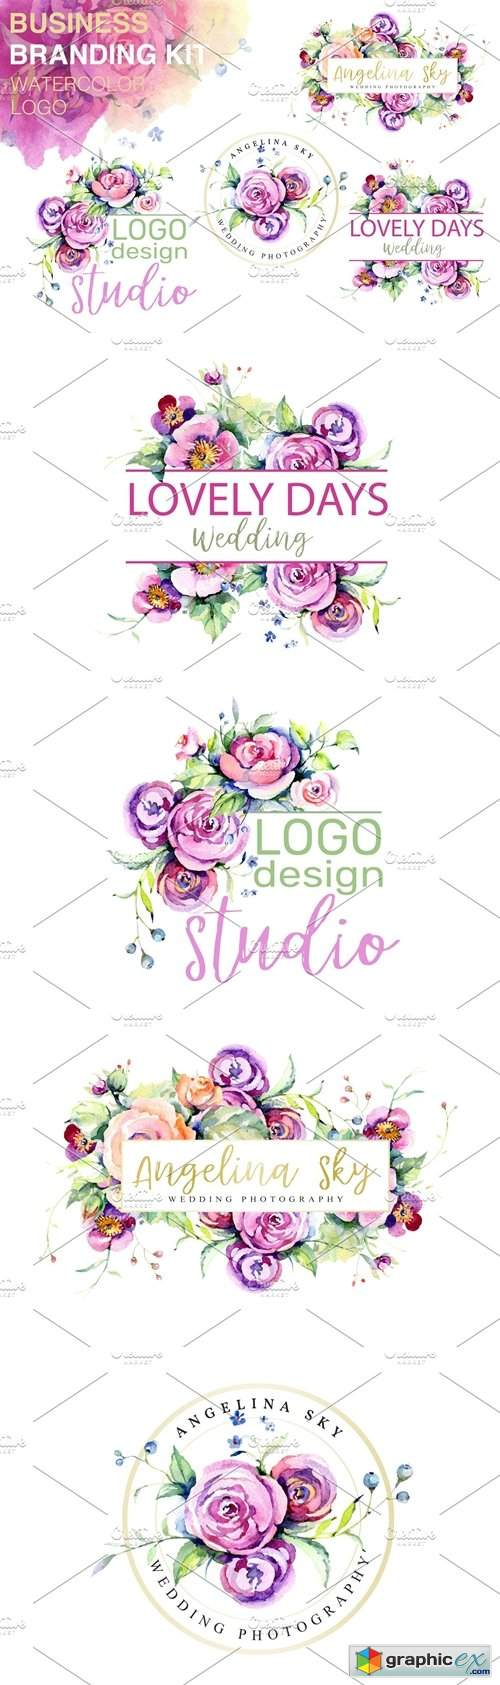 LOGO with roses and wildflowers